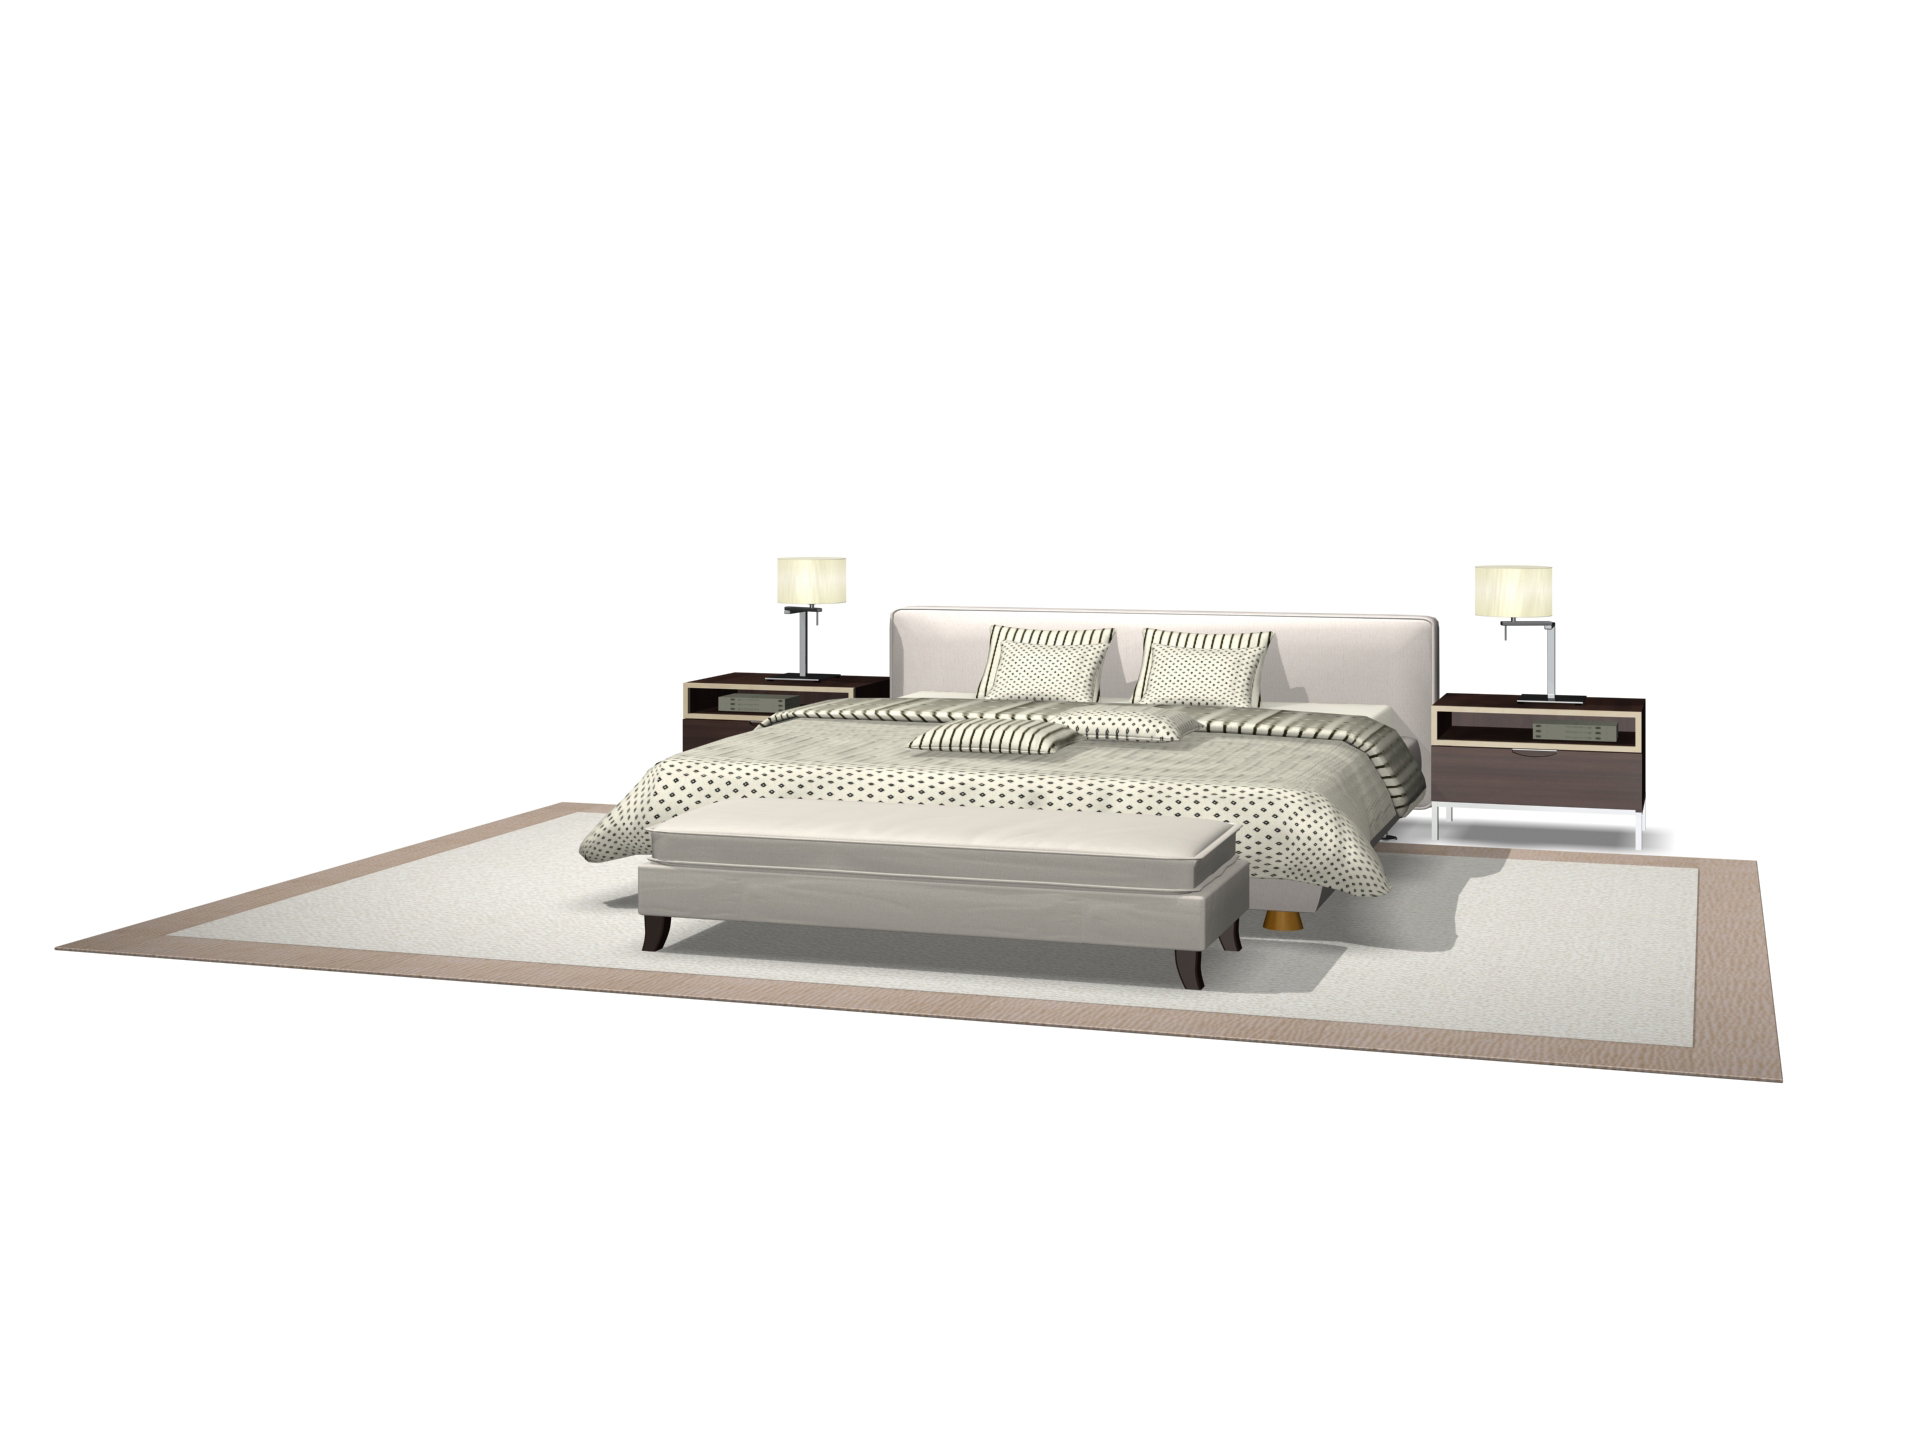 Furniture- 02-bed models 3D Model